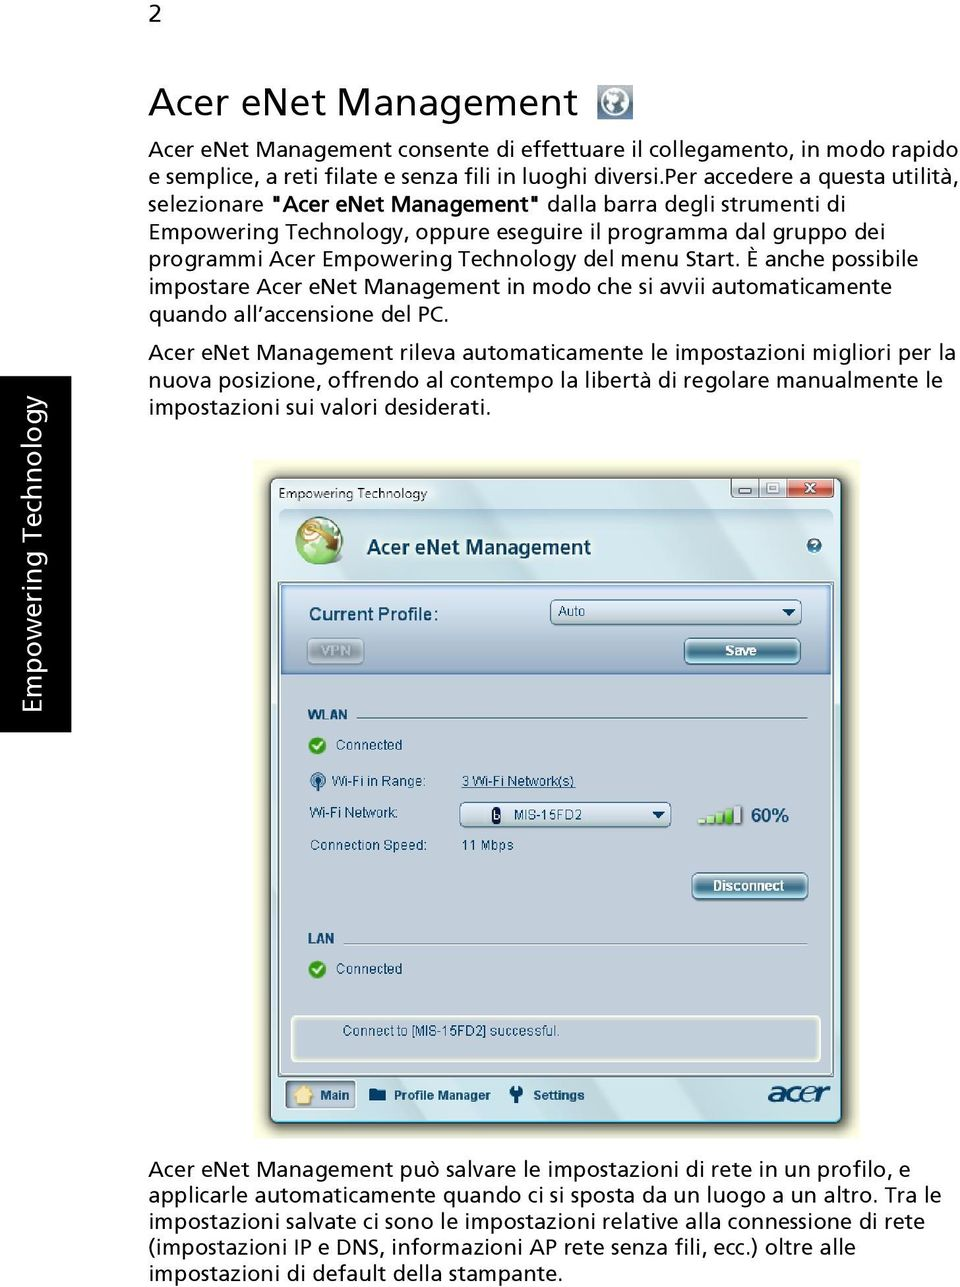 Technology del menu Start. È anche possibile impostare Acer enet Management in modo che si avvii automaticamente quando all accensione del PC.